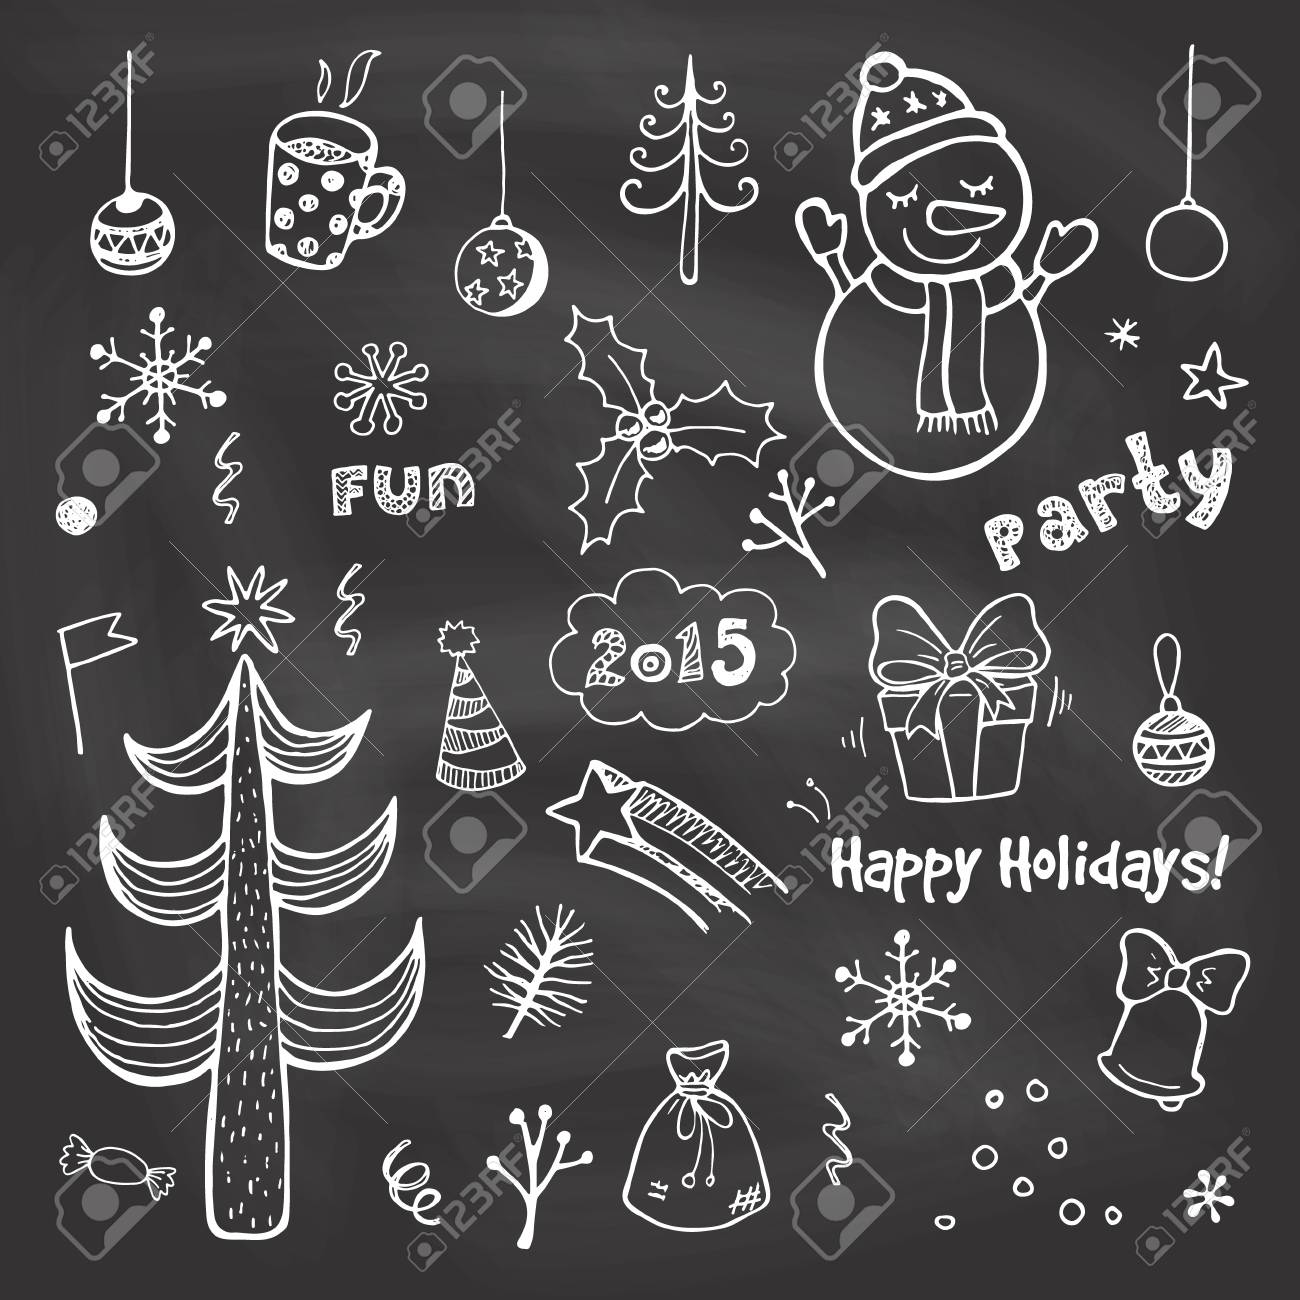 Vintage Christmas Chalkboard Funny Hand Drawn Vector Set Royalty Free Cliparts Vectors And Stock Illustration Image 42280181